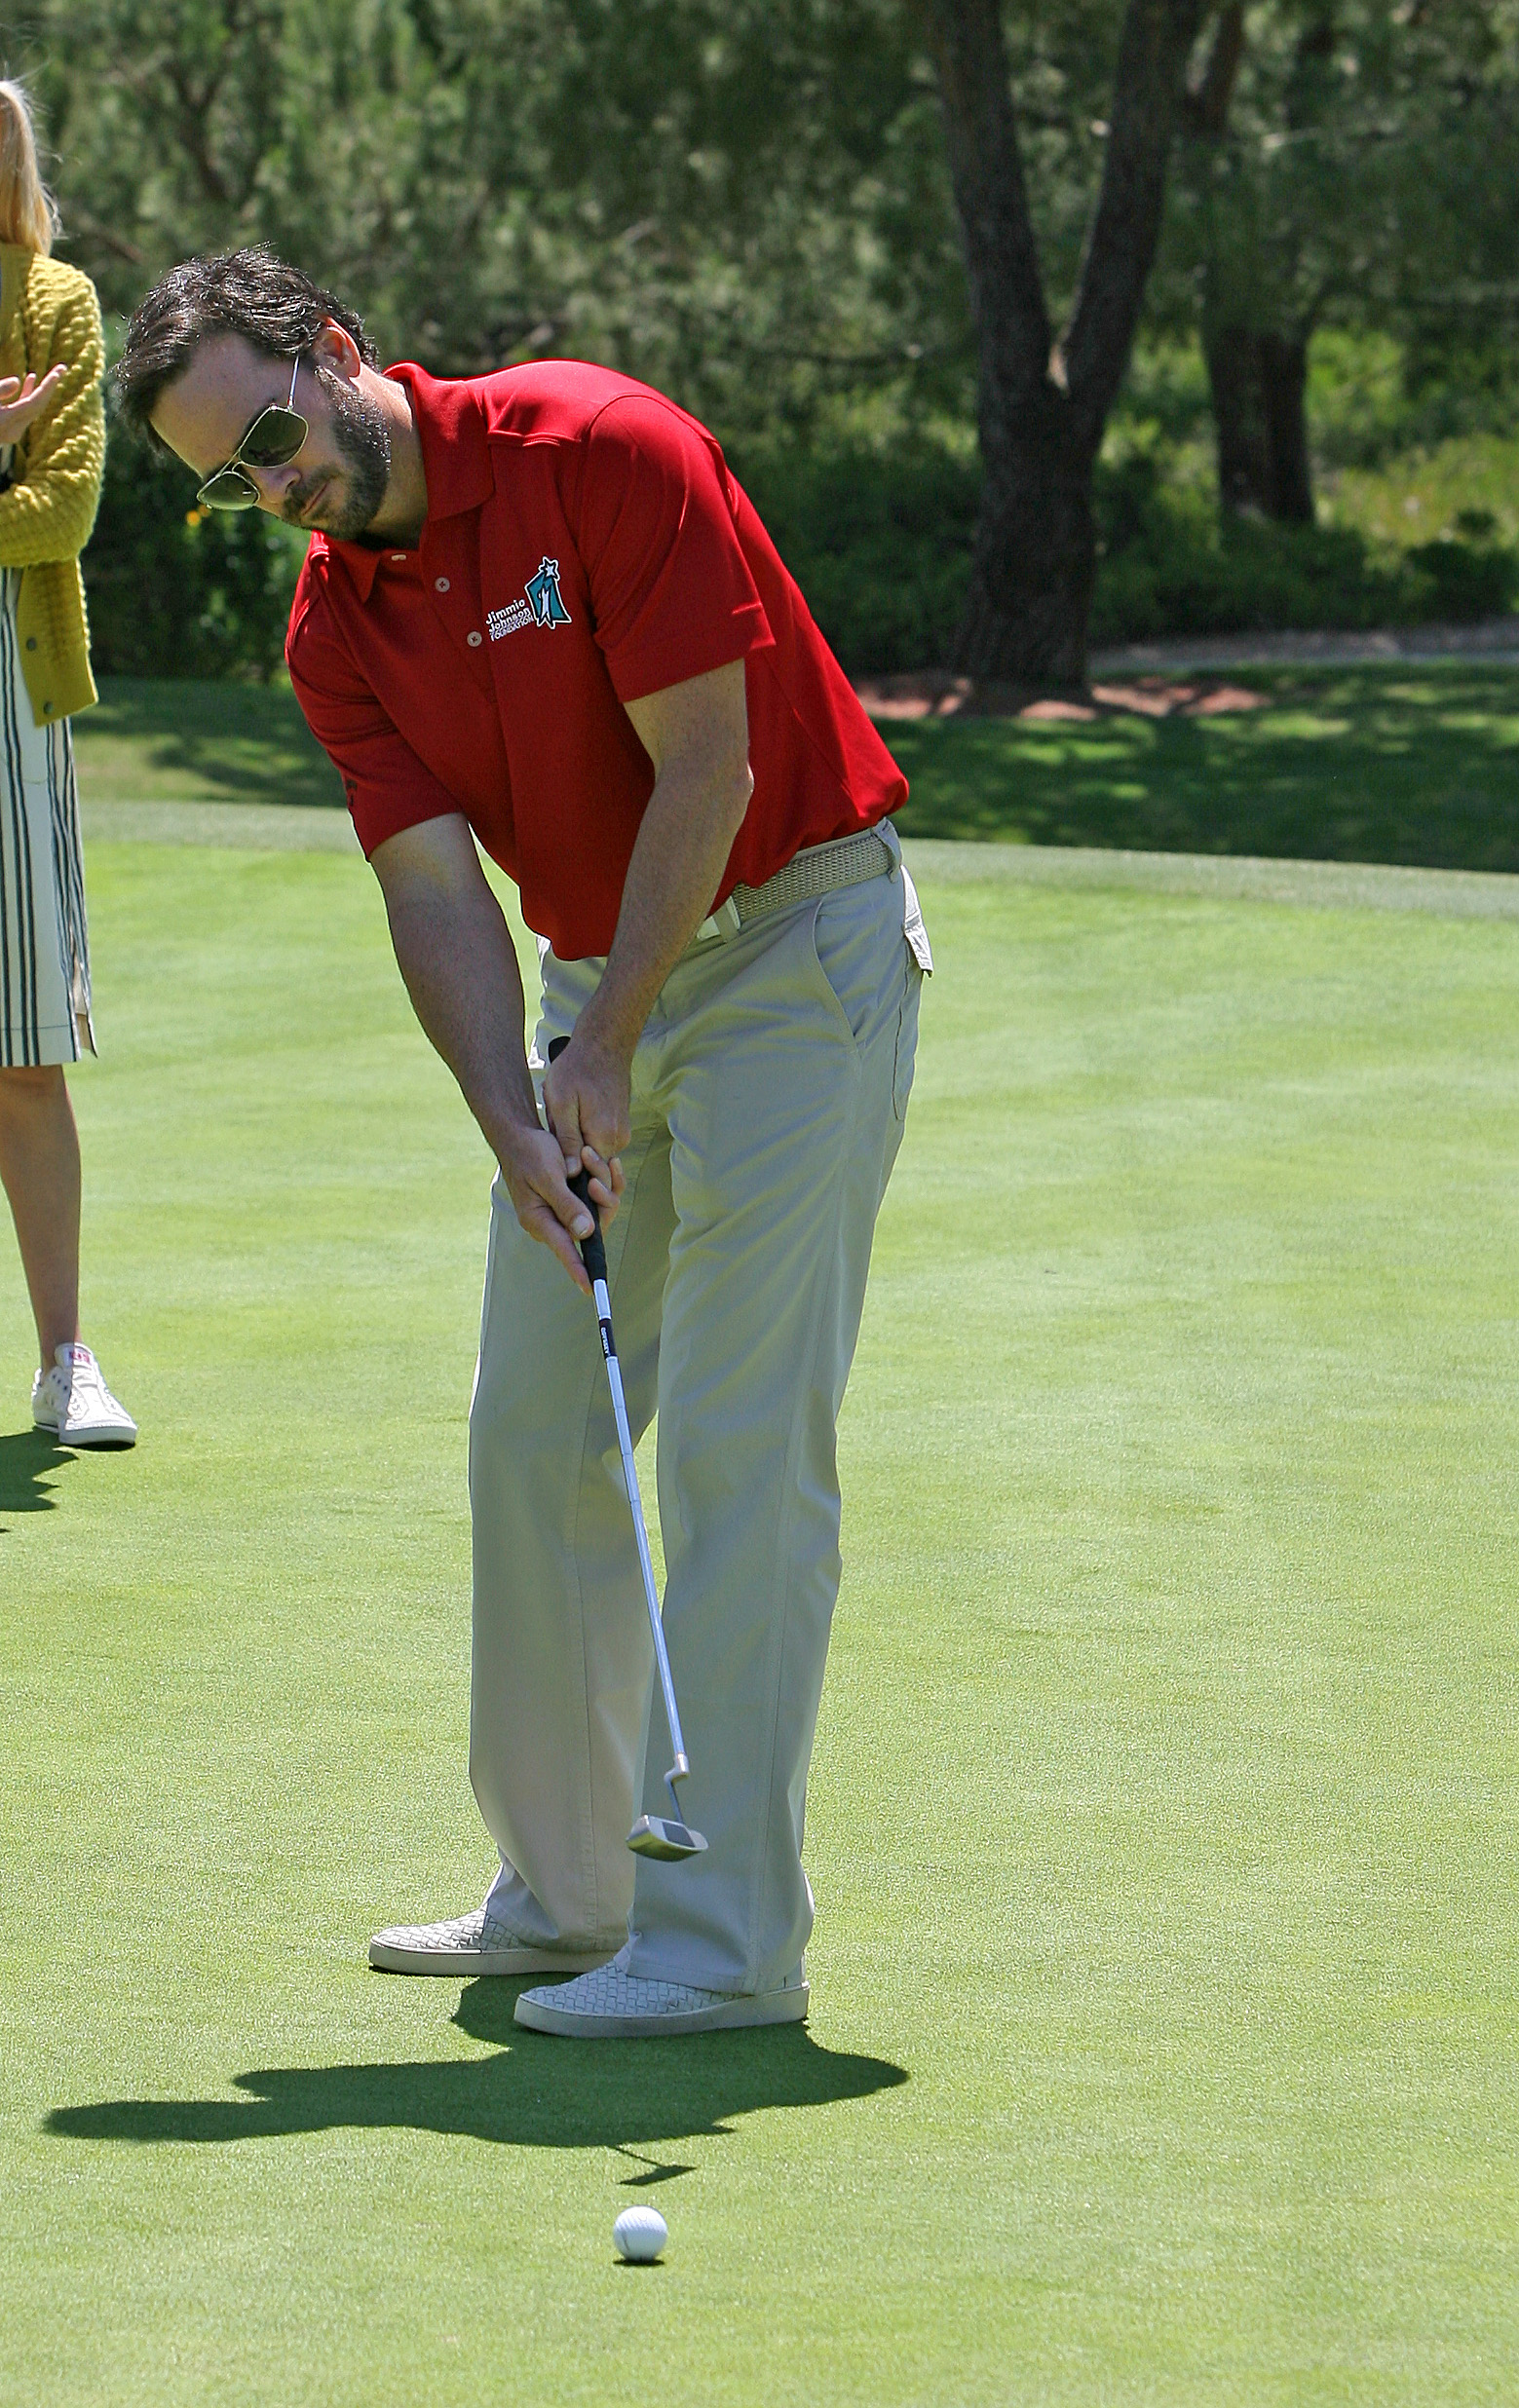 Jimmie practicing his putting (San Diego, 2012)